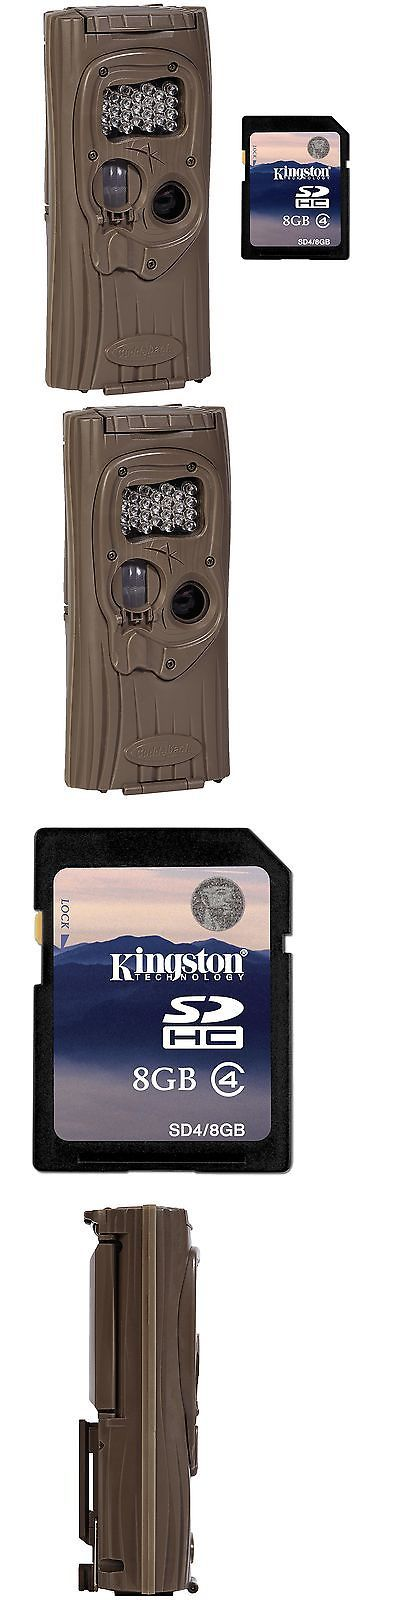 Game and Trail Cameras 52505: Cuddeback F2 Ir Plus 1309 Micro Infrared Trail Game Hunting Camera + Sd Card -> BUY IT NOW ONLY: $84.99 on eBay!